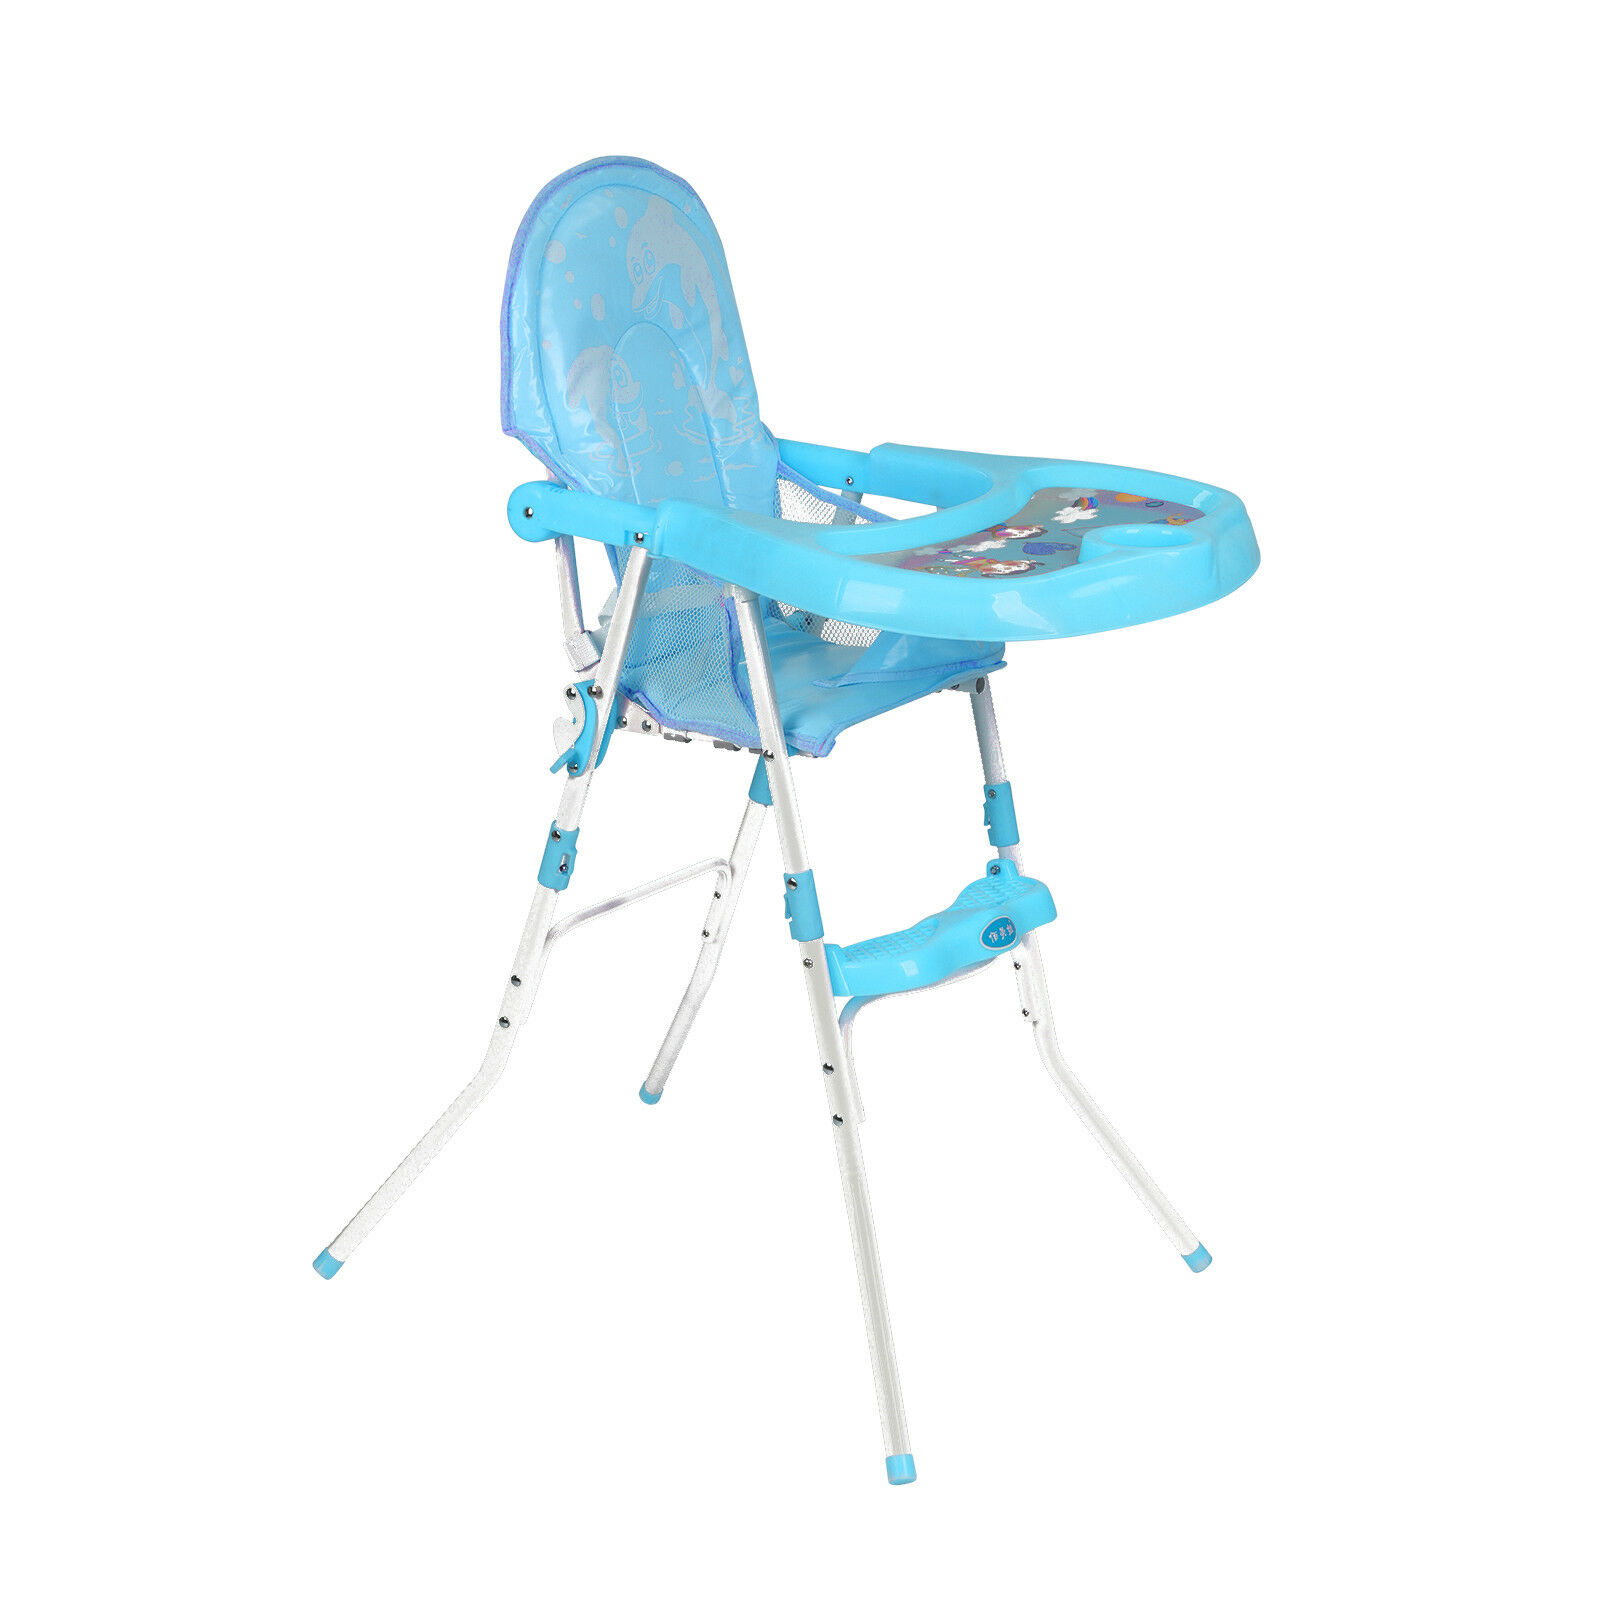 Suitable For Children From 6 Months To 3 Years Baby's High Chair Adjustable Distance Between Seat Tray For Comfort New